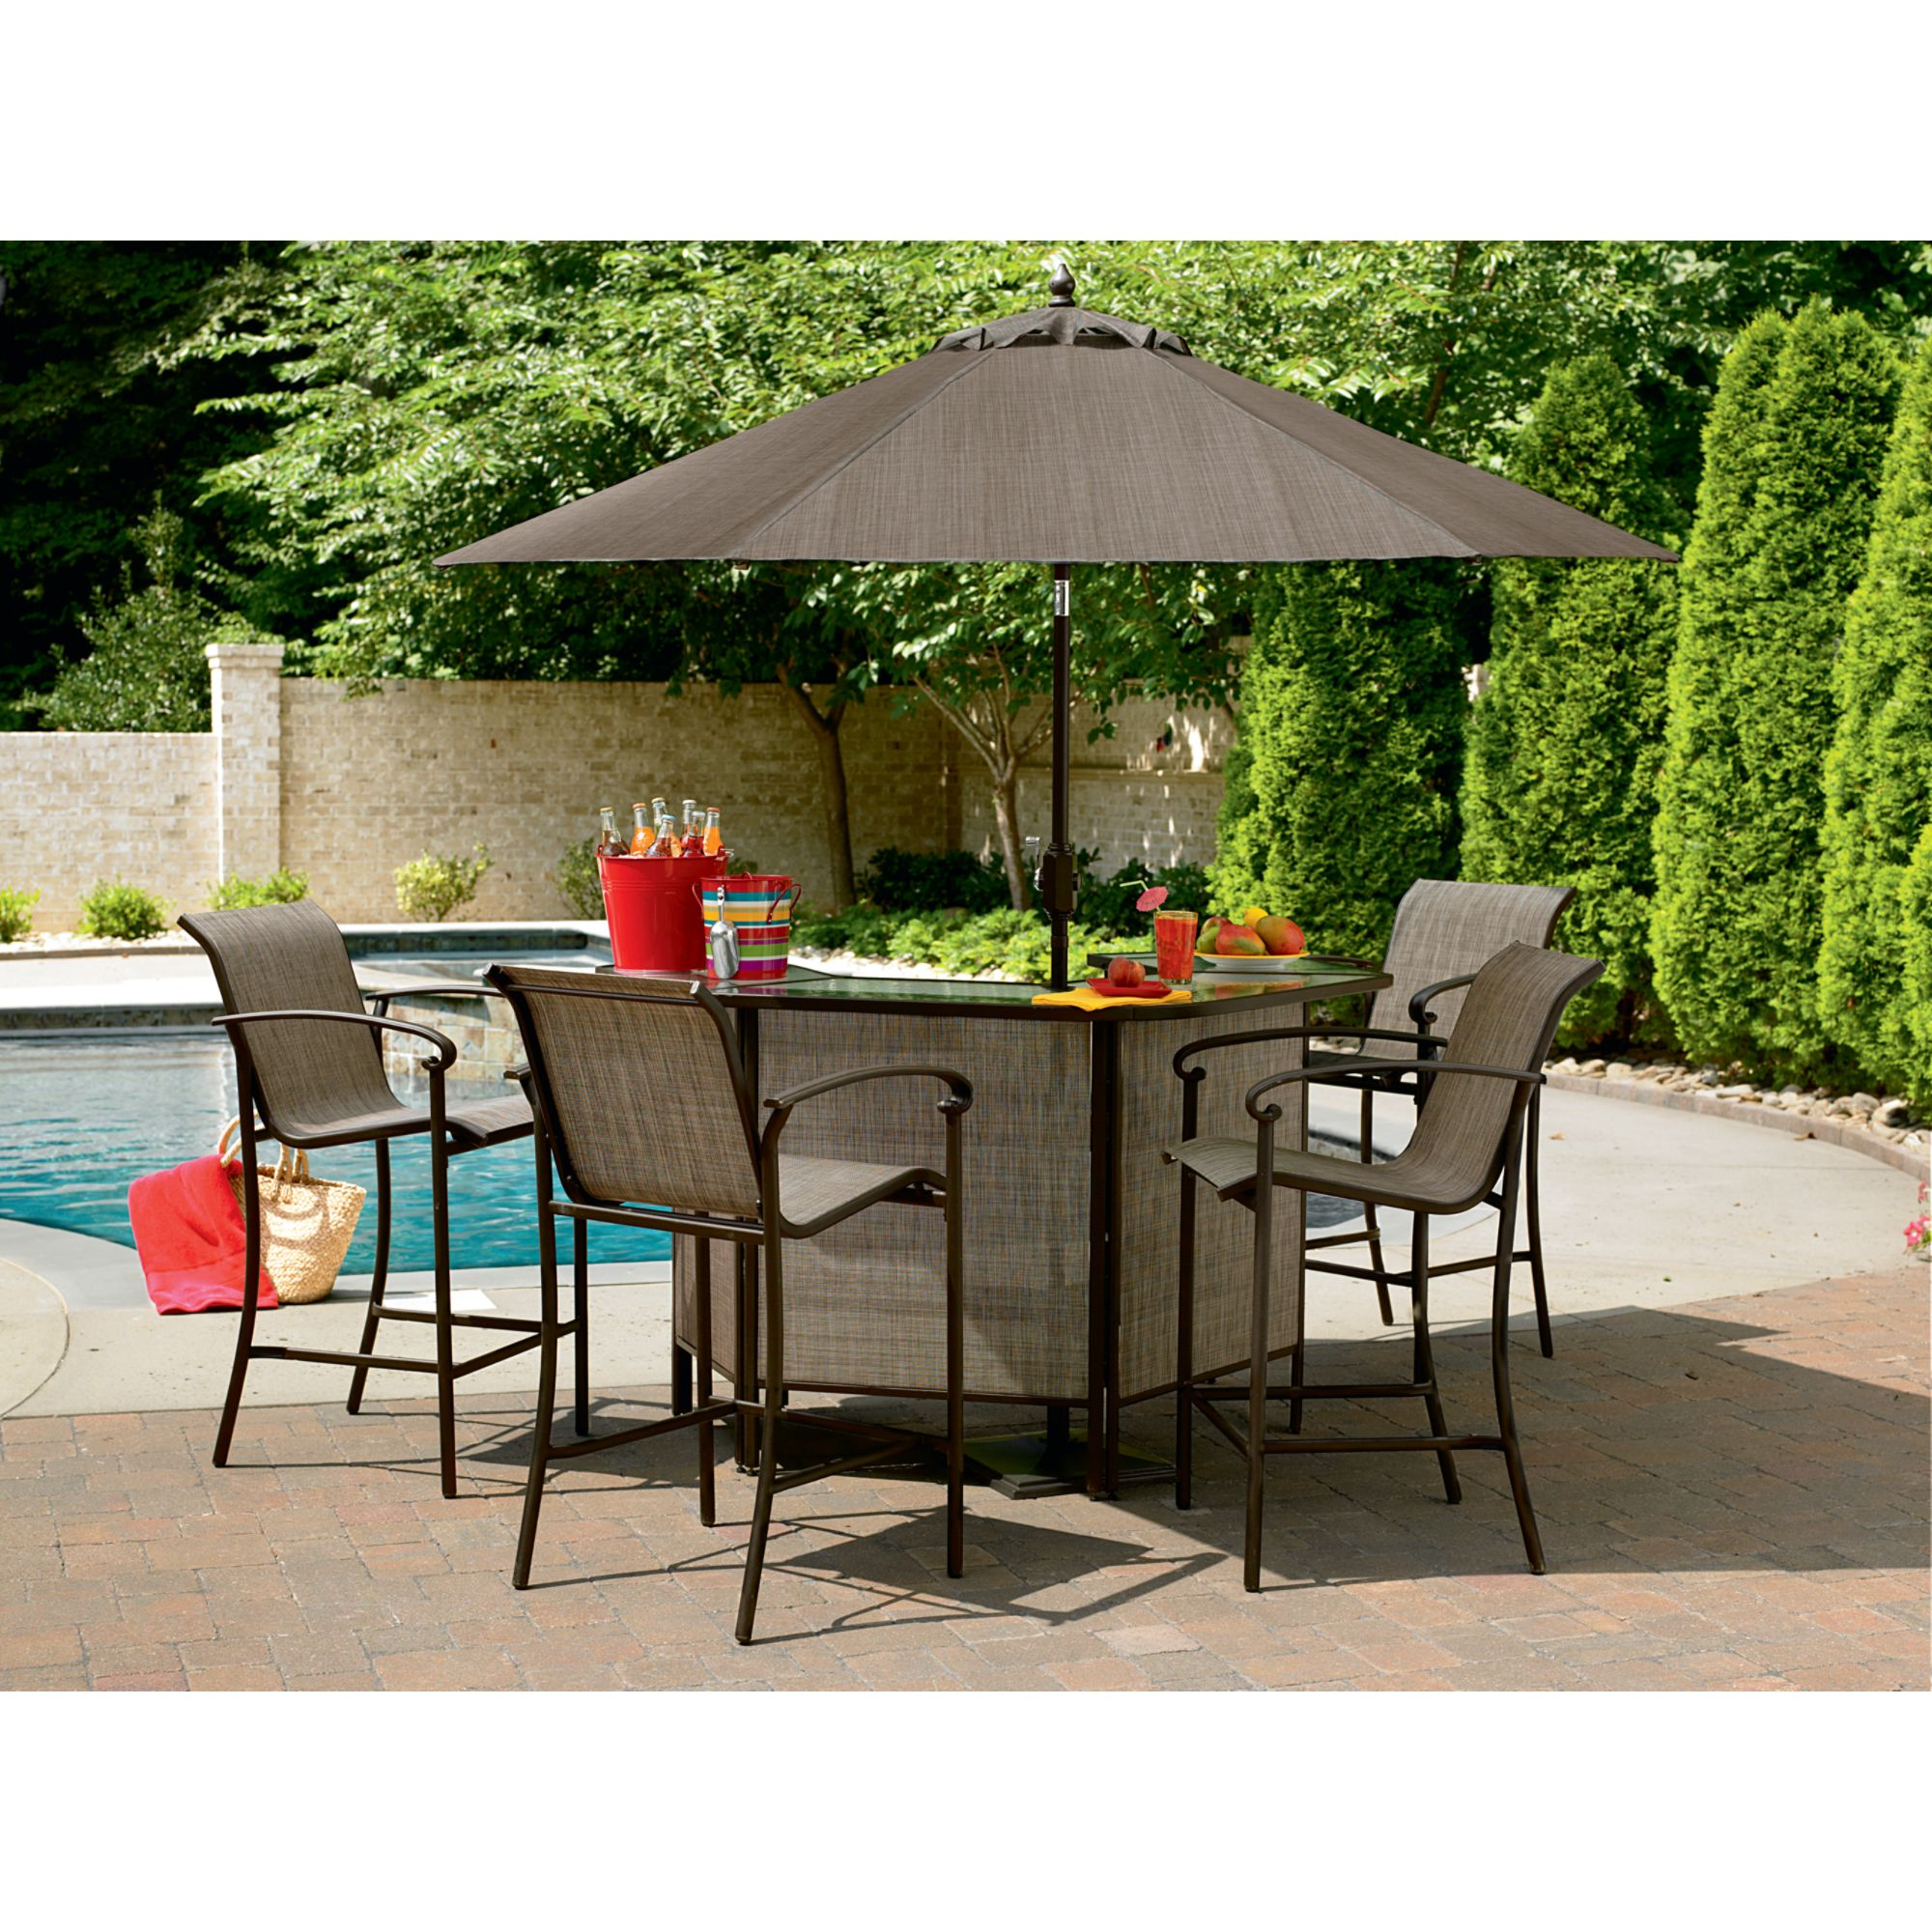 Sears Garden Oasis Patio Bar Set